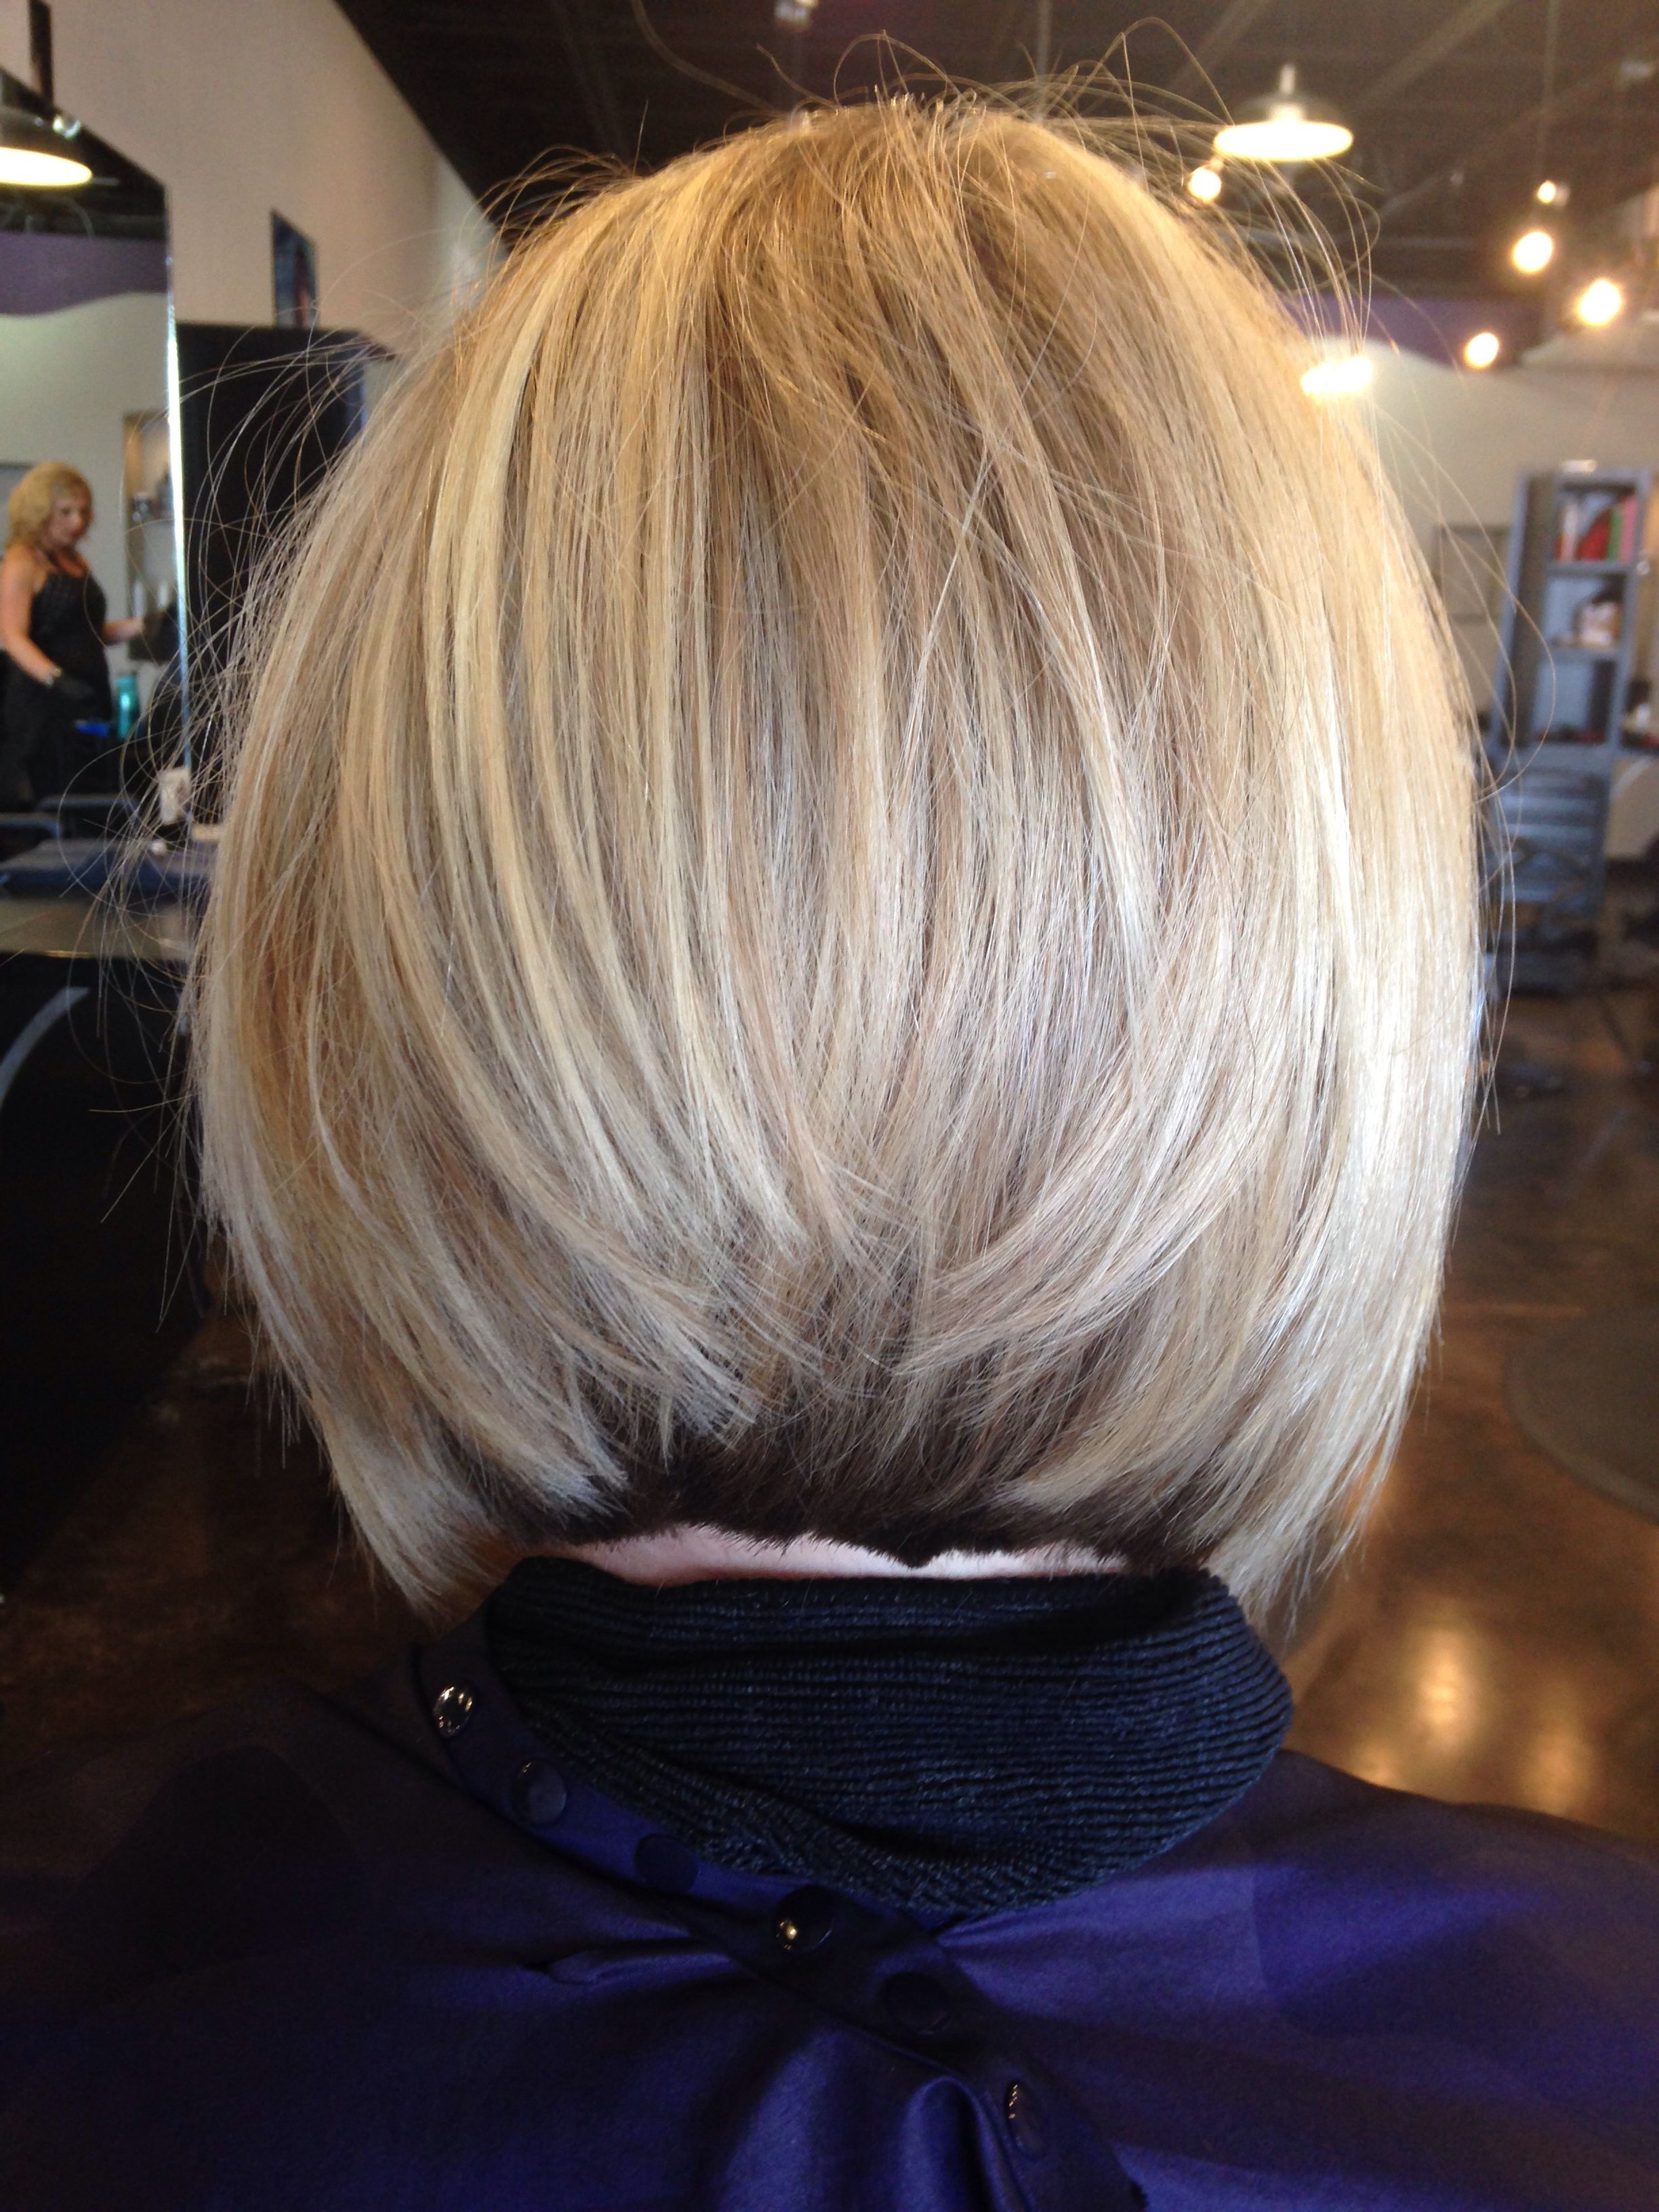 Blond Inverted Stacked Bob | Bob | Pinterest | Blond, Bobs And Hair Pertaining To Brown And Blonde Graduated Bob Hairstyles (View 3 of 20)